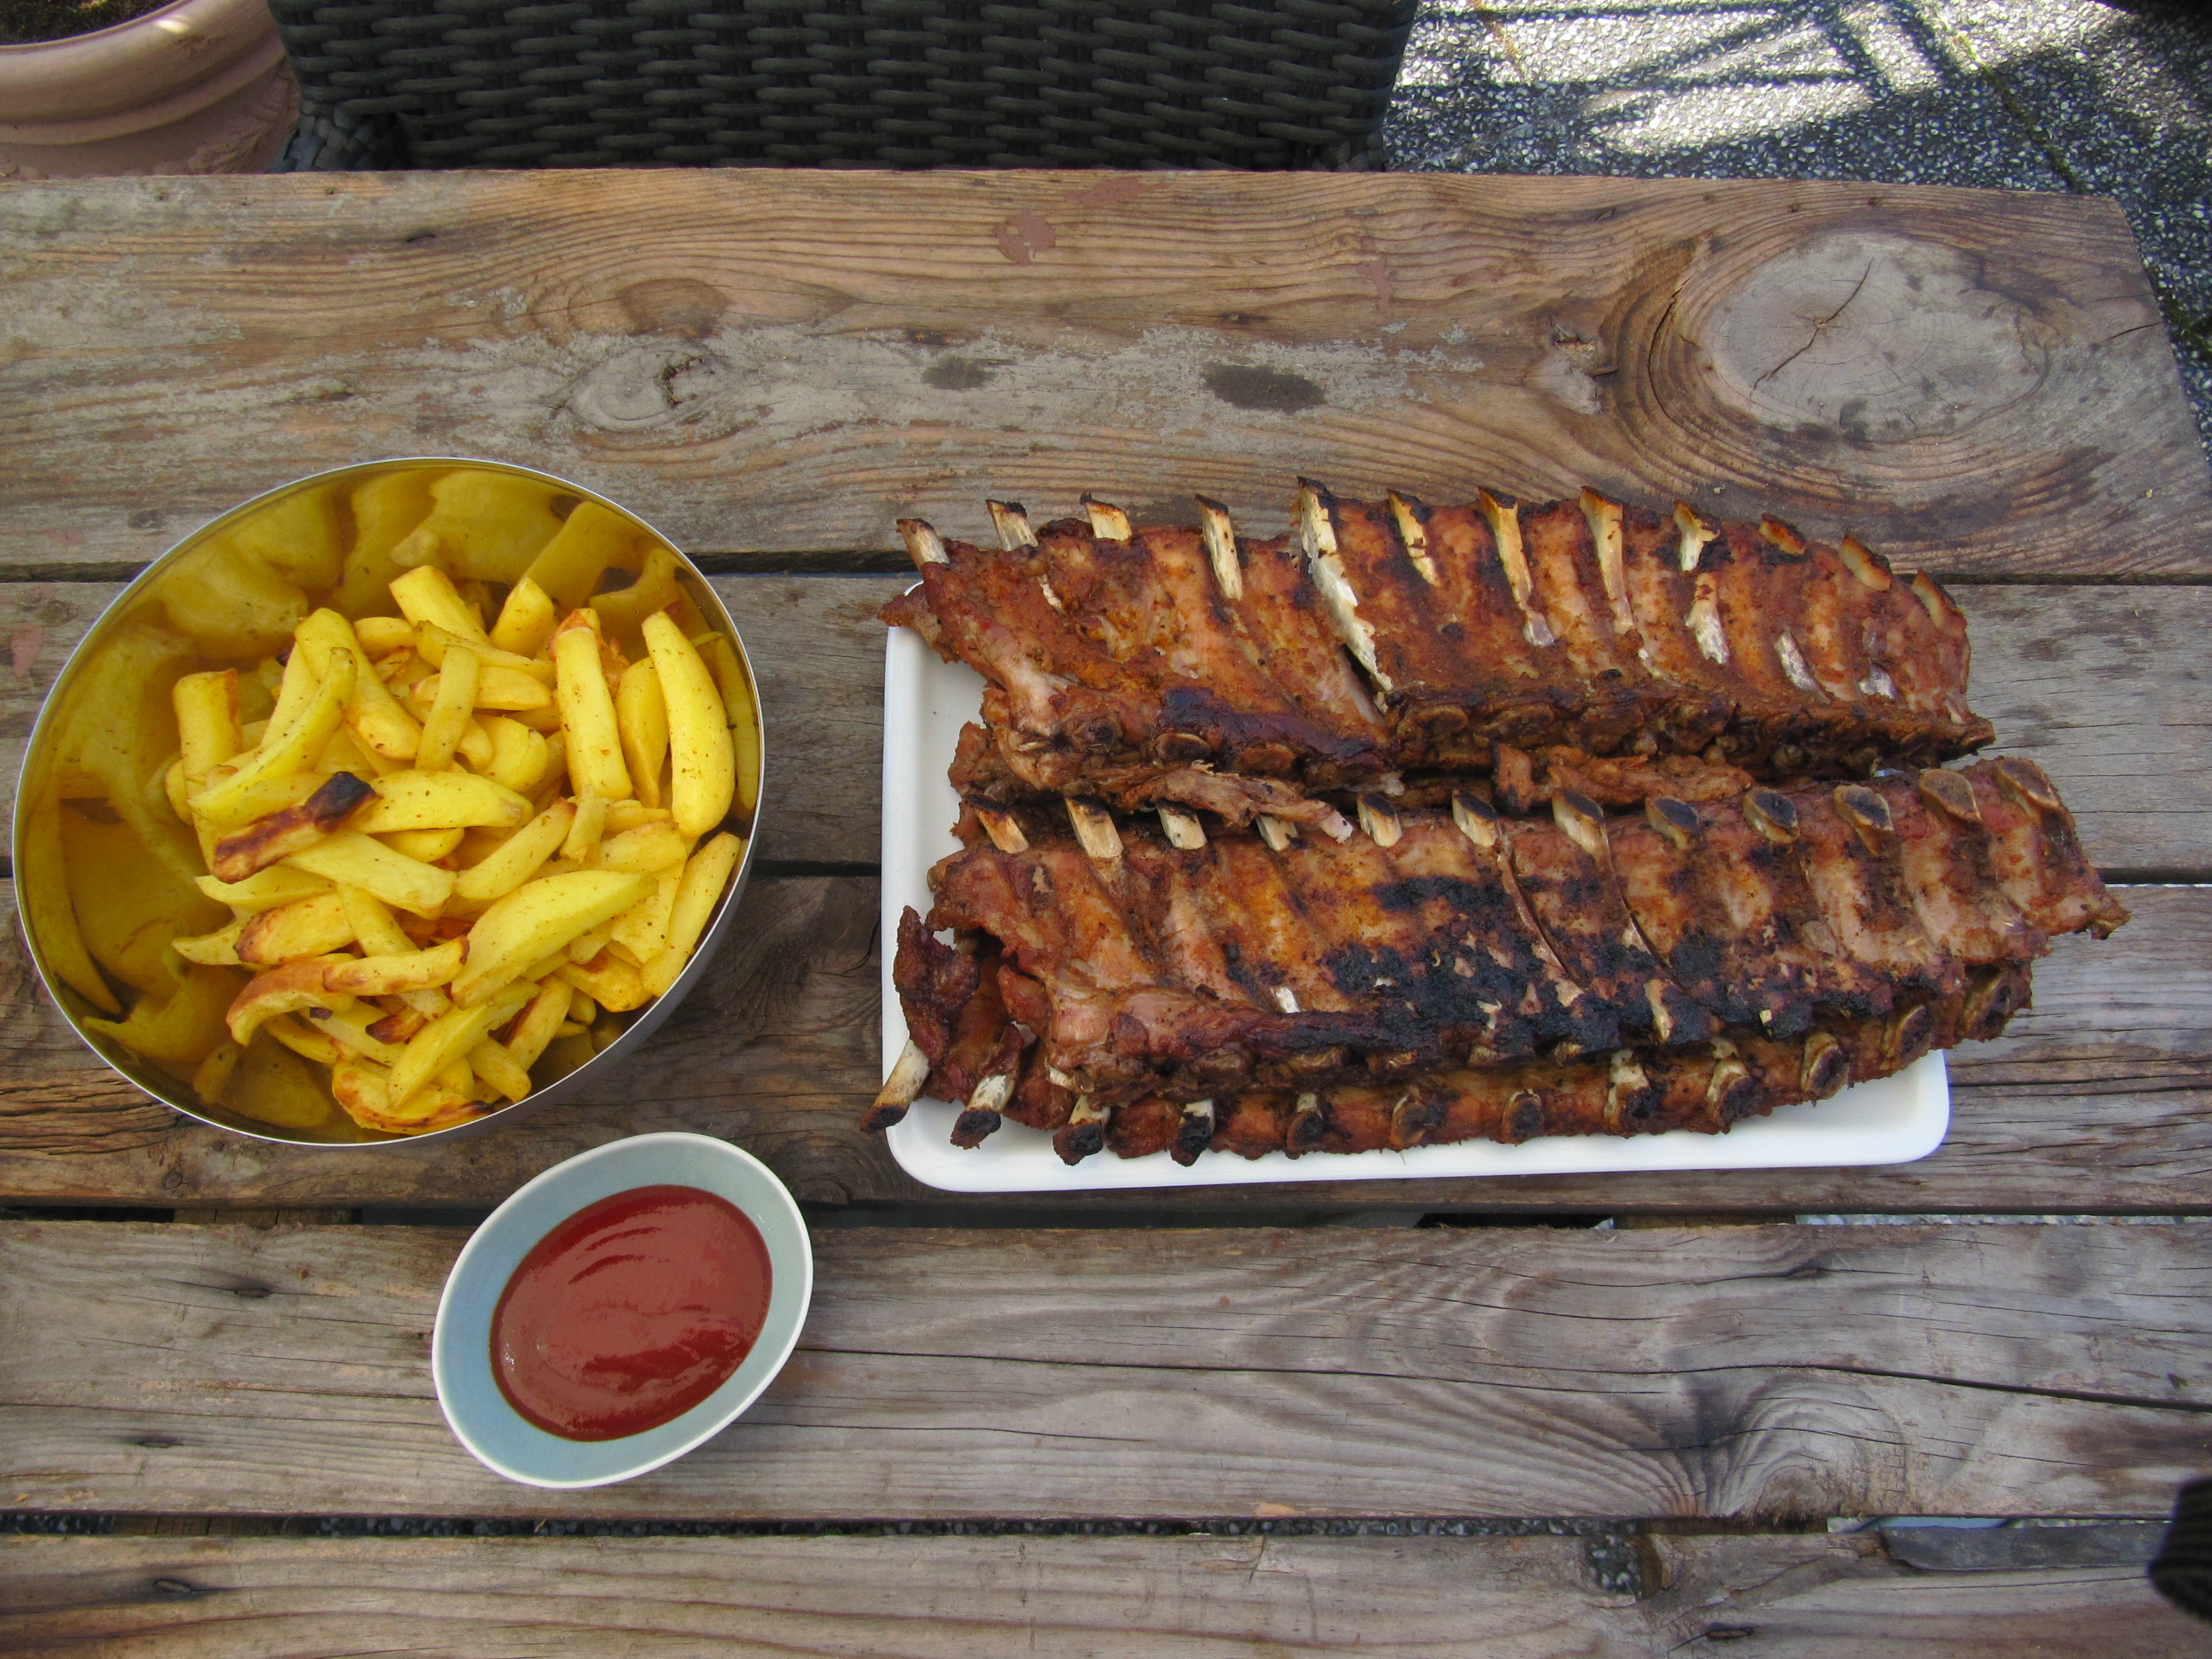 Kalbs Spareribs Gasgrill : Spareribs aus dem broil king rib roaster mit potato wedges